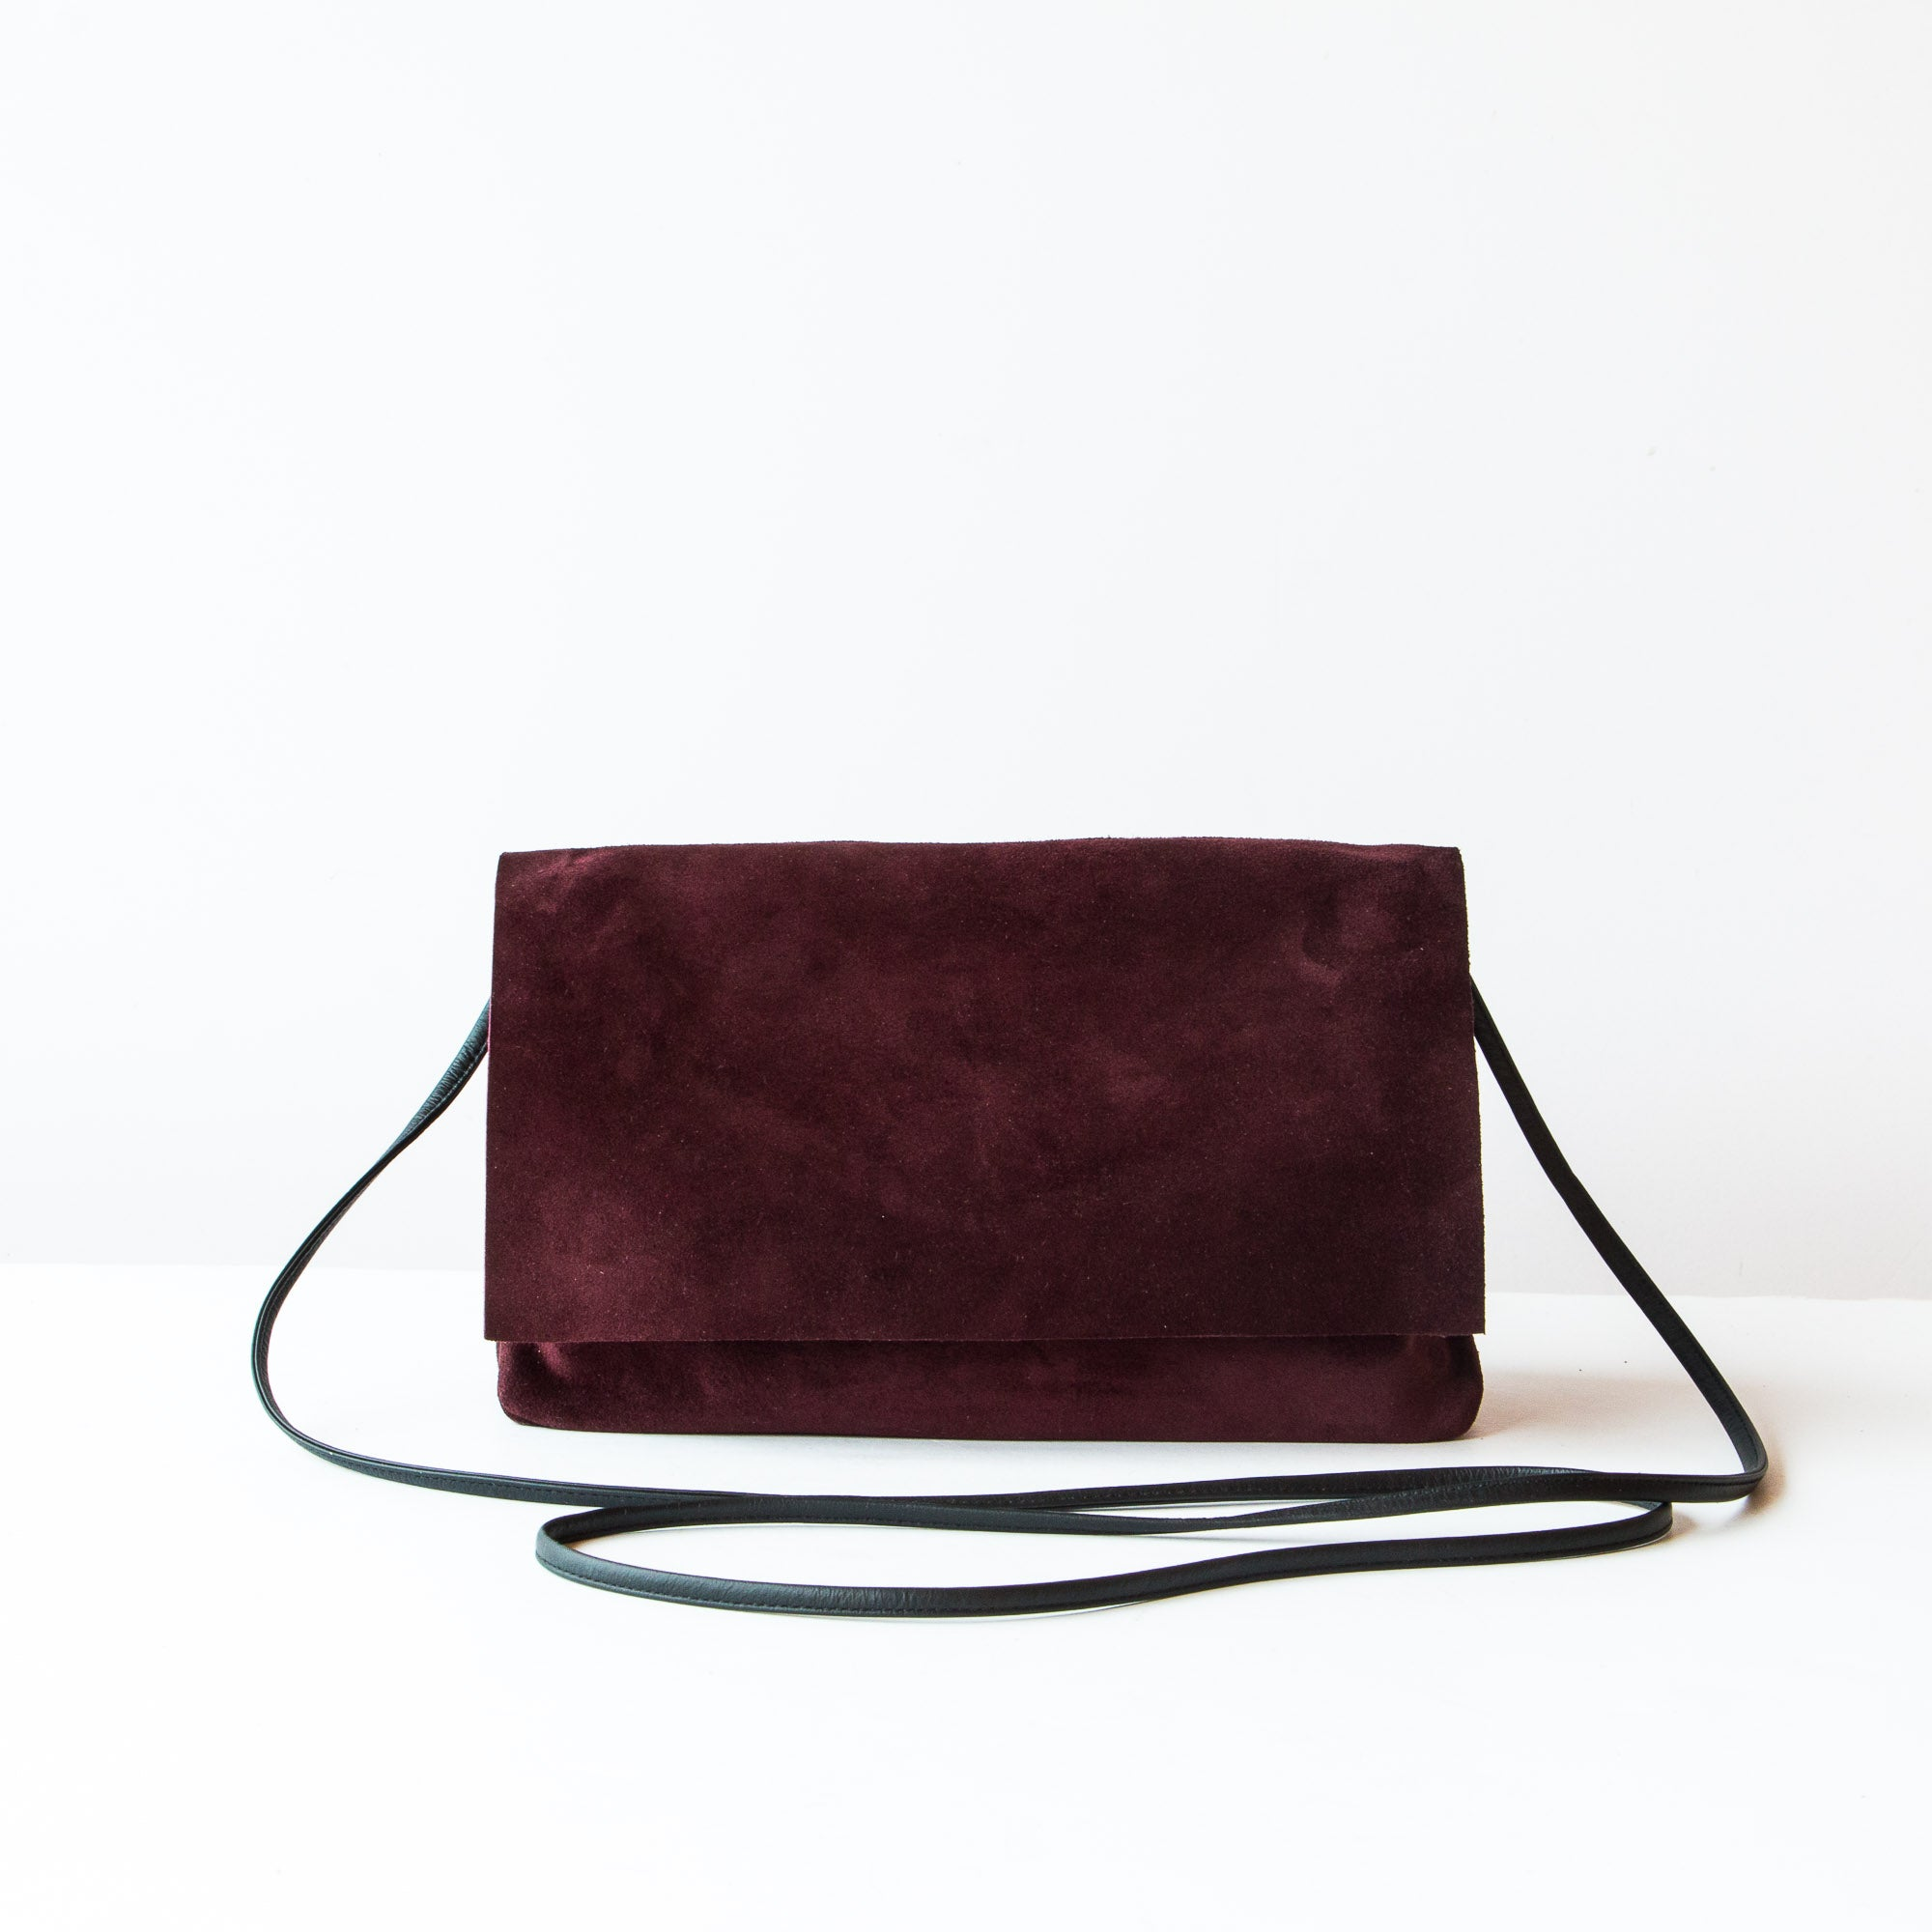 Bordeaux & Khaki - Handmade Flap Purse in Calf Suede & Pork Suede Lining - Sold by Chic & Basta